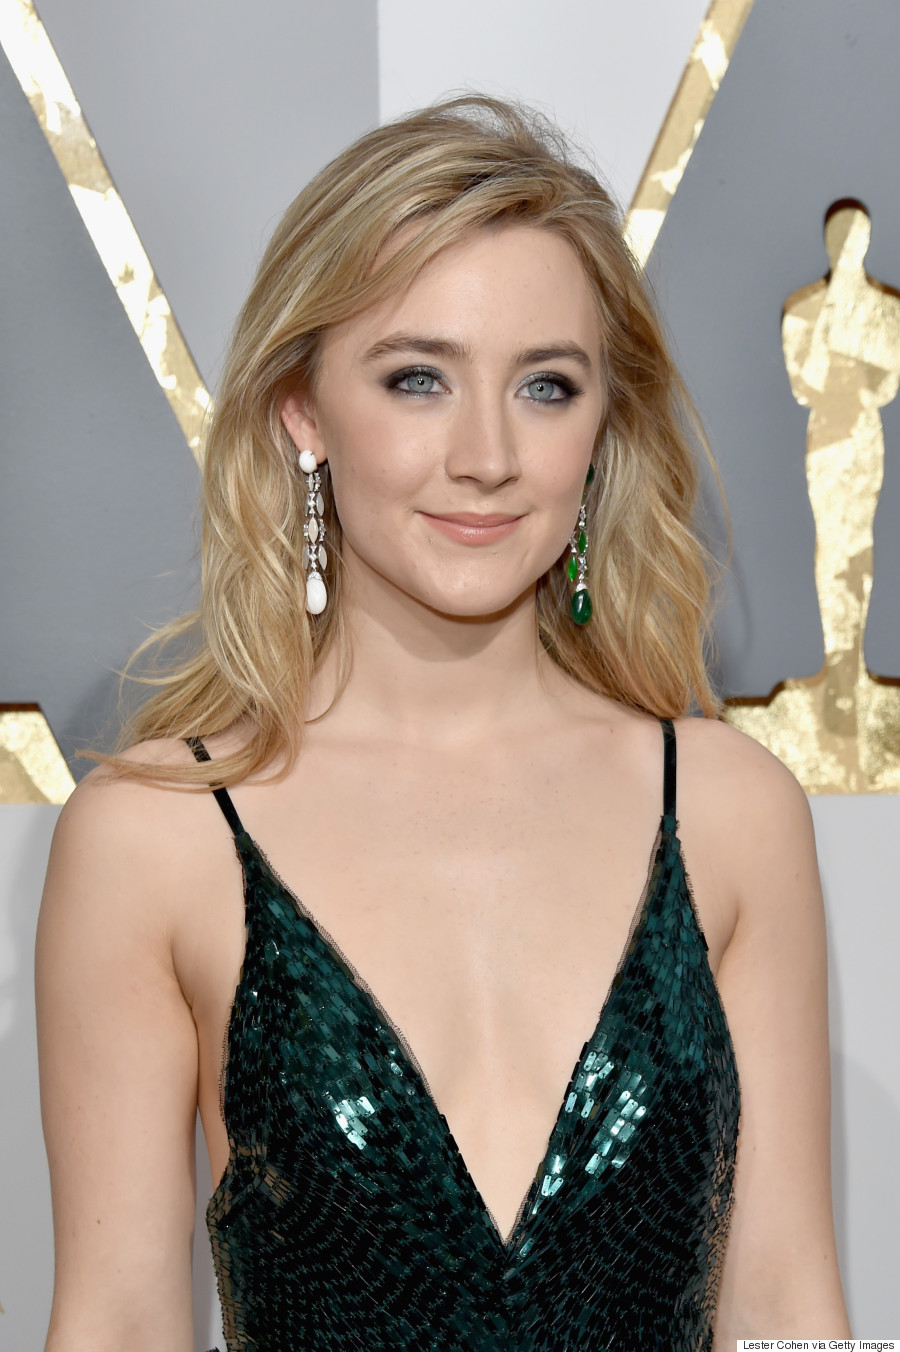 Photo taken from the Huffington Post - of Saoirse Ronan